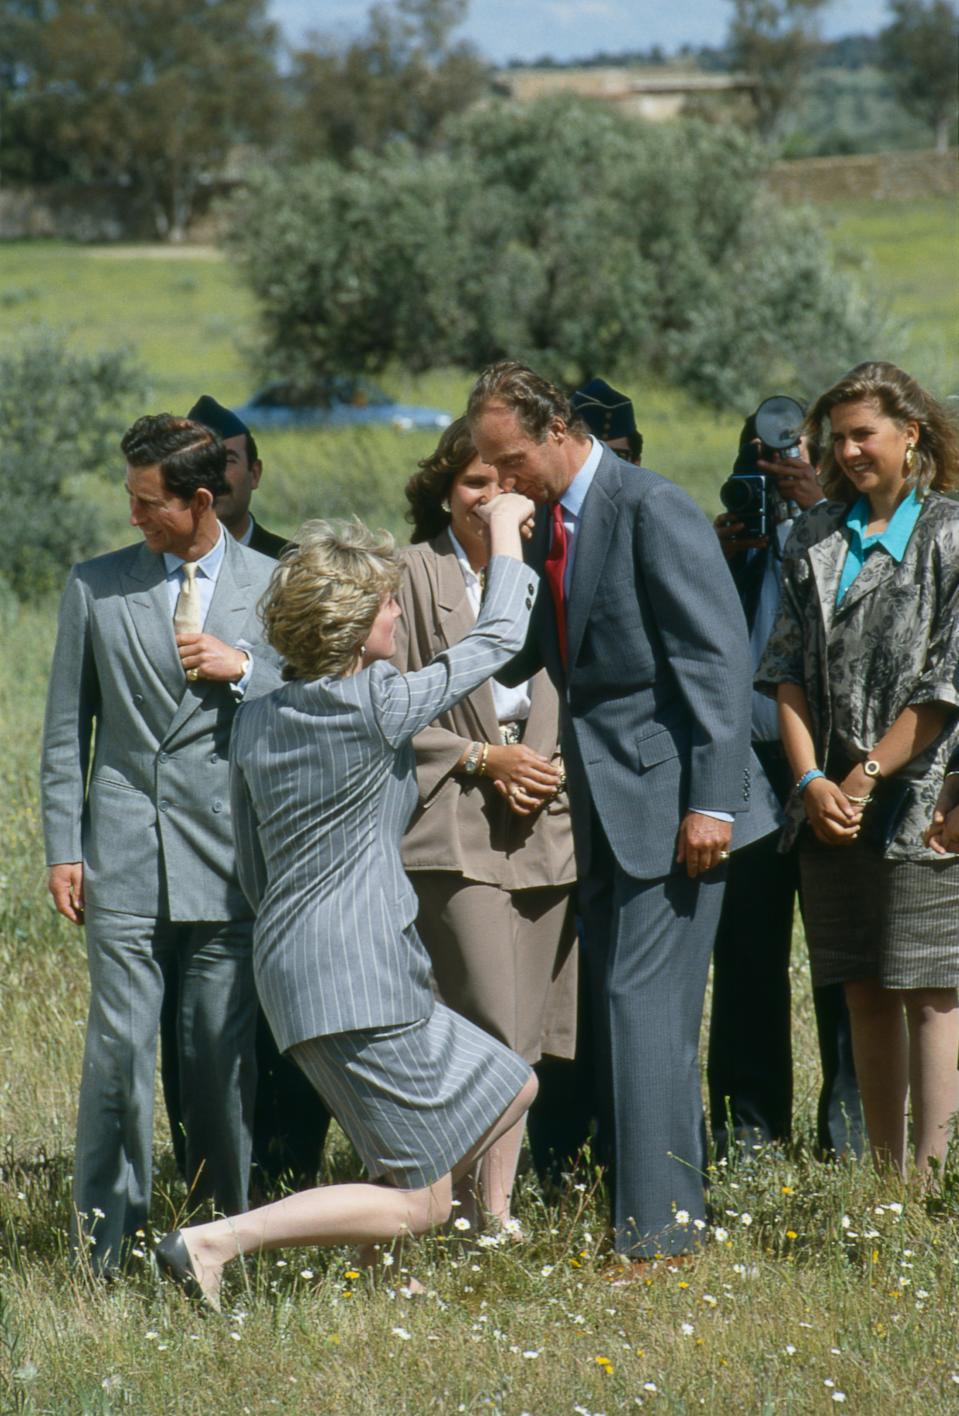 En abril de 1987 el príncipe Carlos y Lady Di hicieron una visita oficial a España. Los <em>royals </em>pasaron por Toledo y dejaron esta curiosa instantánea en la que Diana muestra sus respetos al monarca. (Foto: Tim Graham Photo Library / Getty Images)